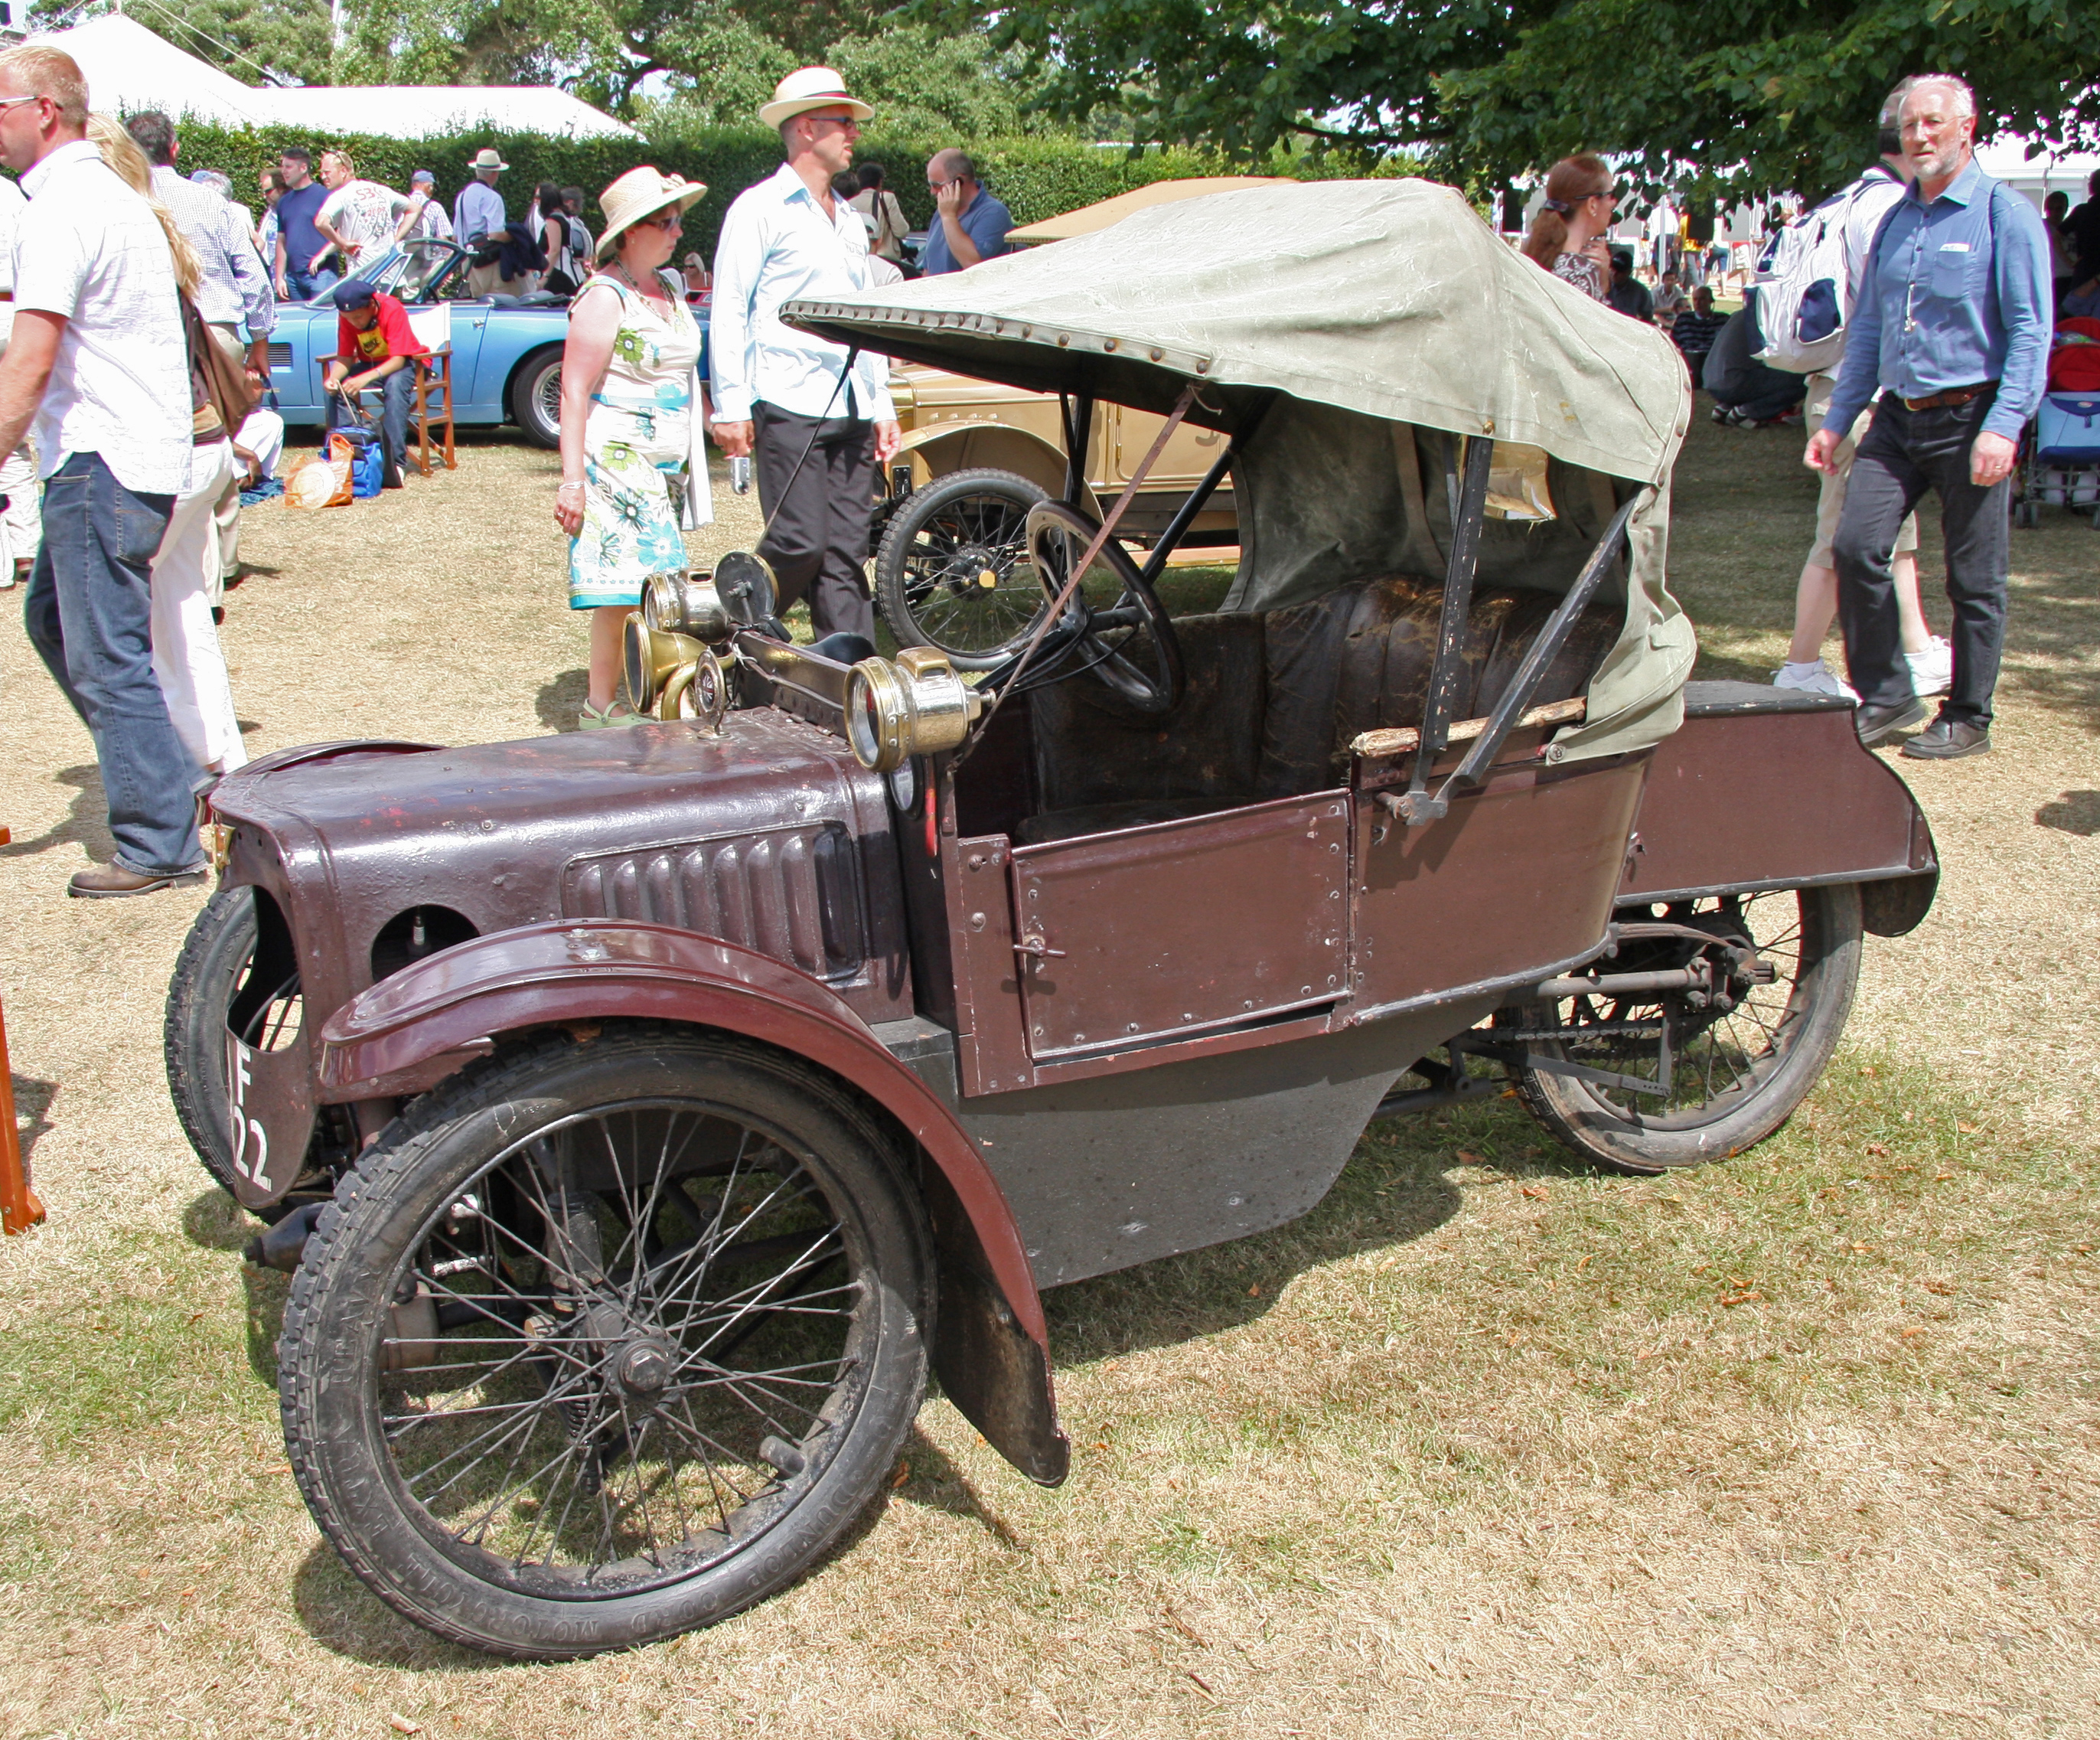 File:1912 Morgan Runabout Deluxe.jpg - Wikipedia, the free